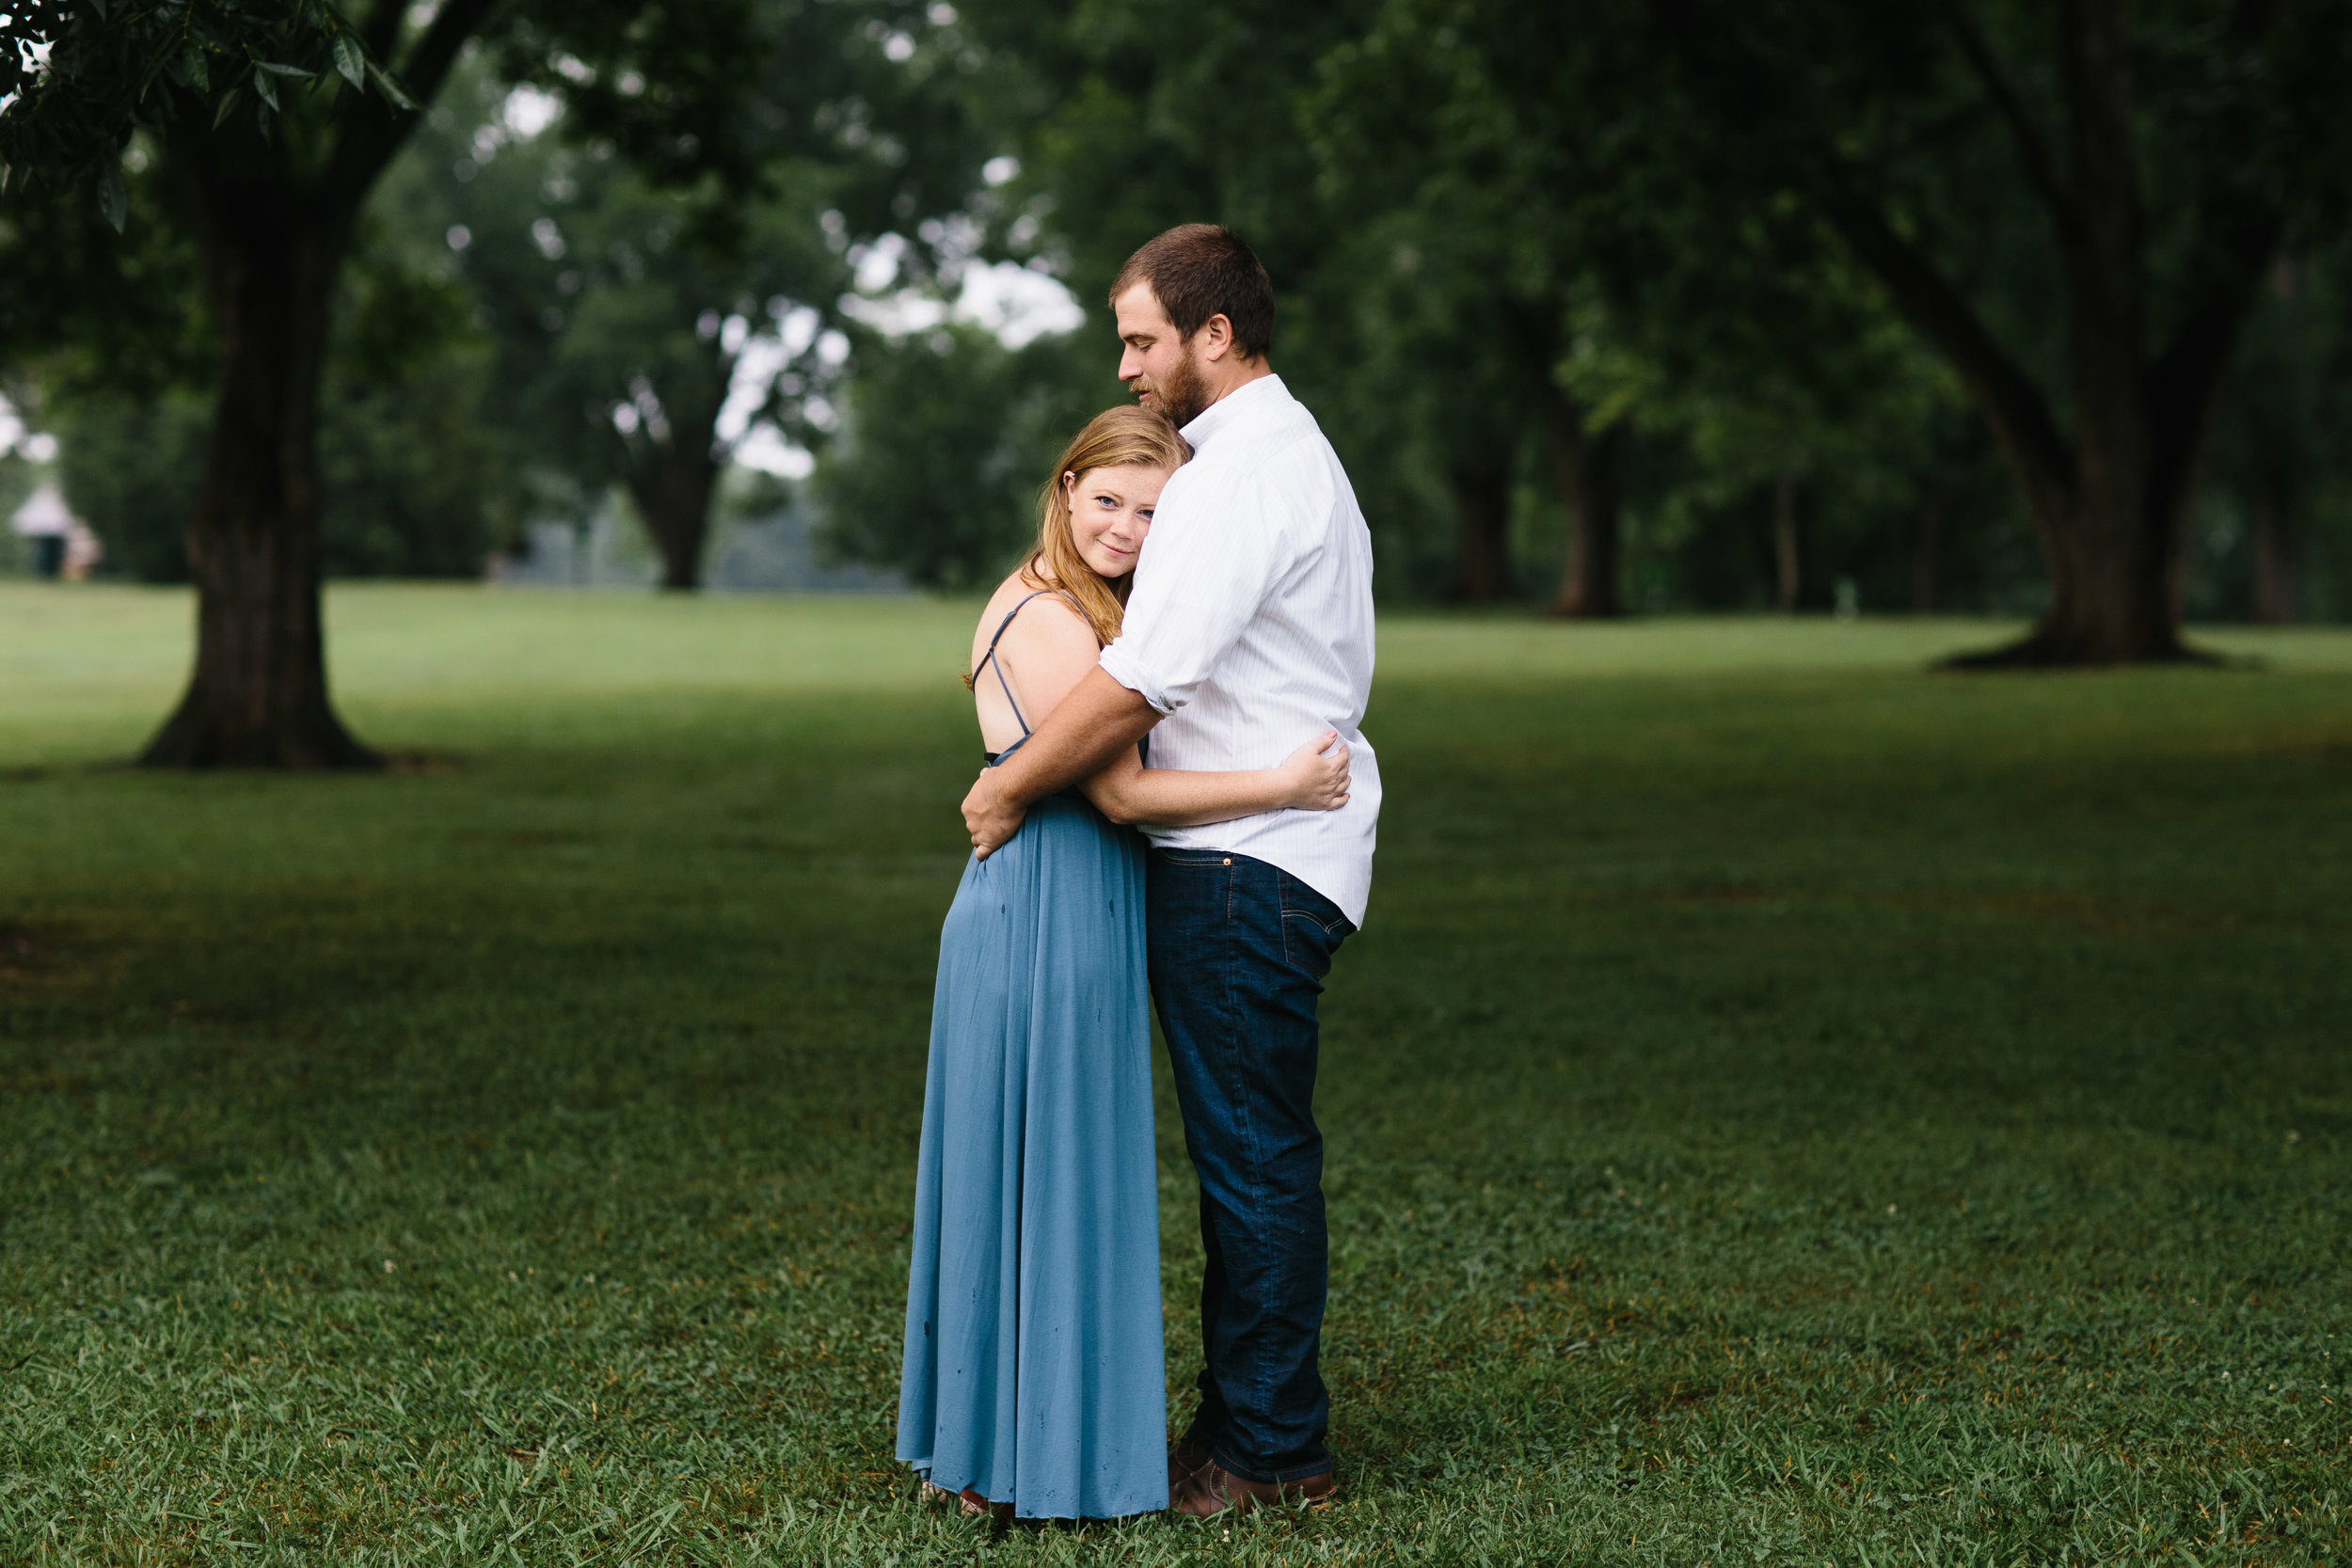 rainy photos.engagement photo inspiration.raleigh engagement photographer.JPG